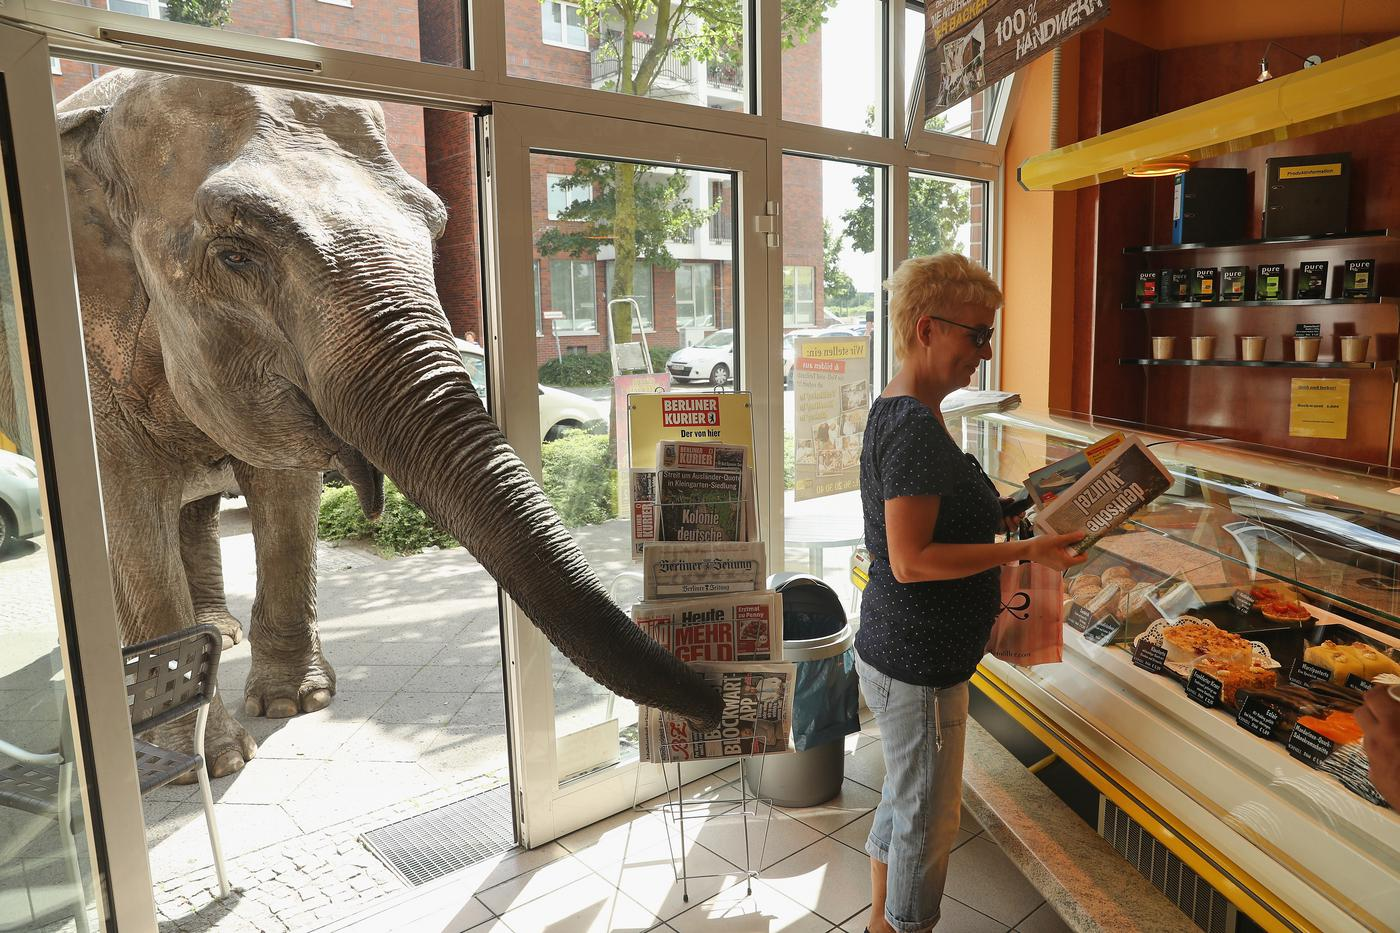 BERLIN, GERMANY - JULY 01: Maja, a 40-year-old elephant, extends her trunk into a bakery as a customer buys a newspaper while Maja took a stroll through the neighborhood with her minders from a nearby circus on July 1, 2016 in Berlin, Germany. Maja performs daily at Circus Busch and circus workers take her on walks among the nearby apartment buildings to vacant lots where she likes to eat the grass. City authorities sanction the outings and federal regulations reportedly encourage activities for elephants to stimulate the animals' cognitive awareness. (Photo by Sean Gallup/Getty Images)